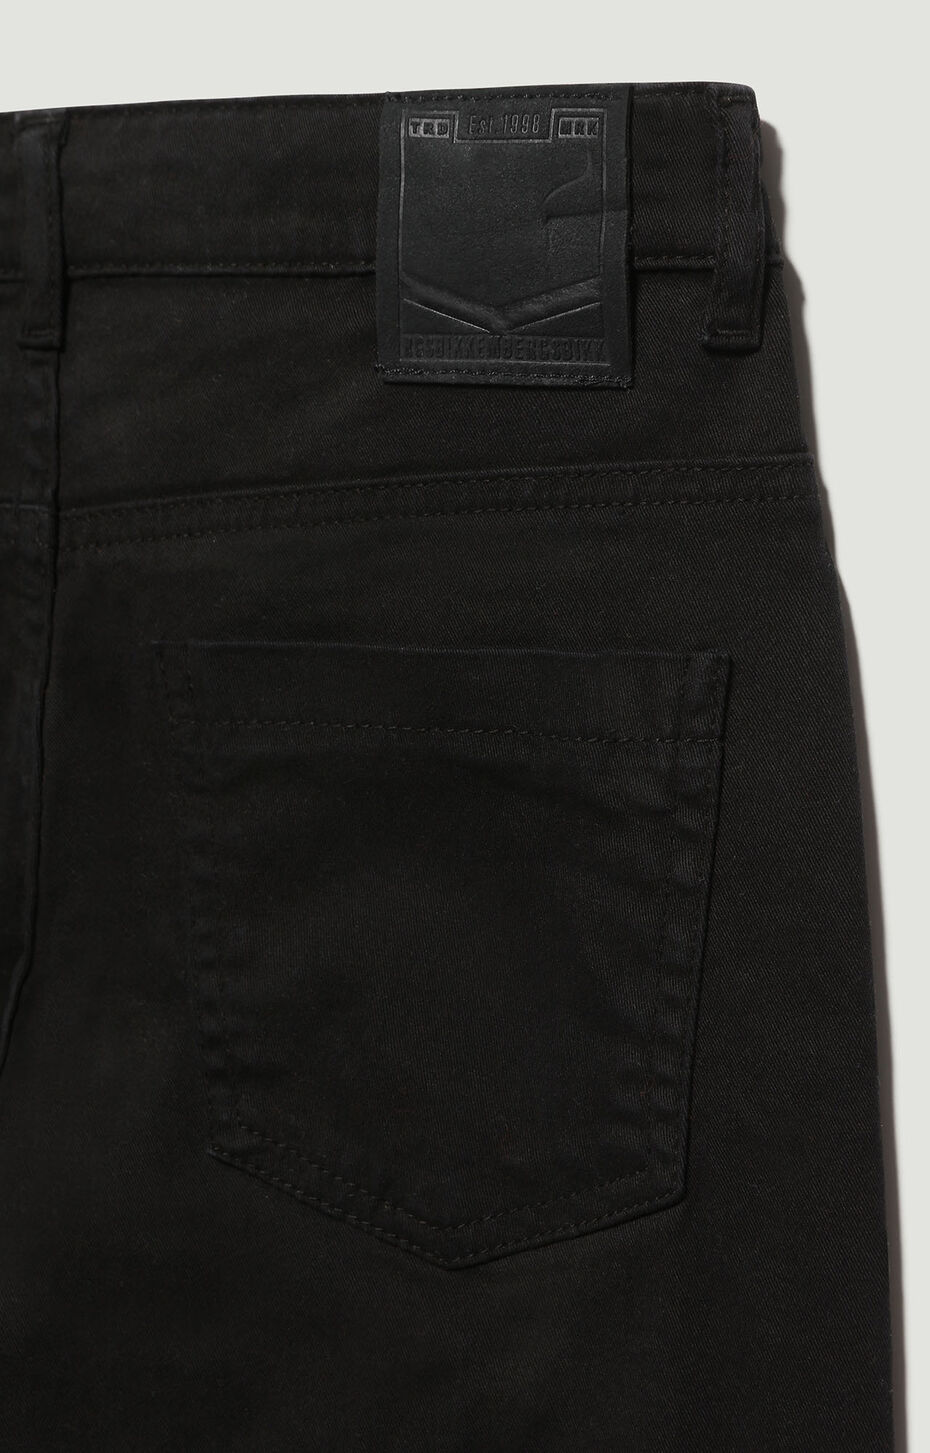 WOVEN TROUSERS, Black, hi-res-1